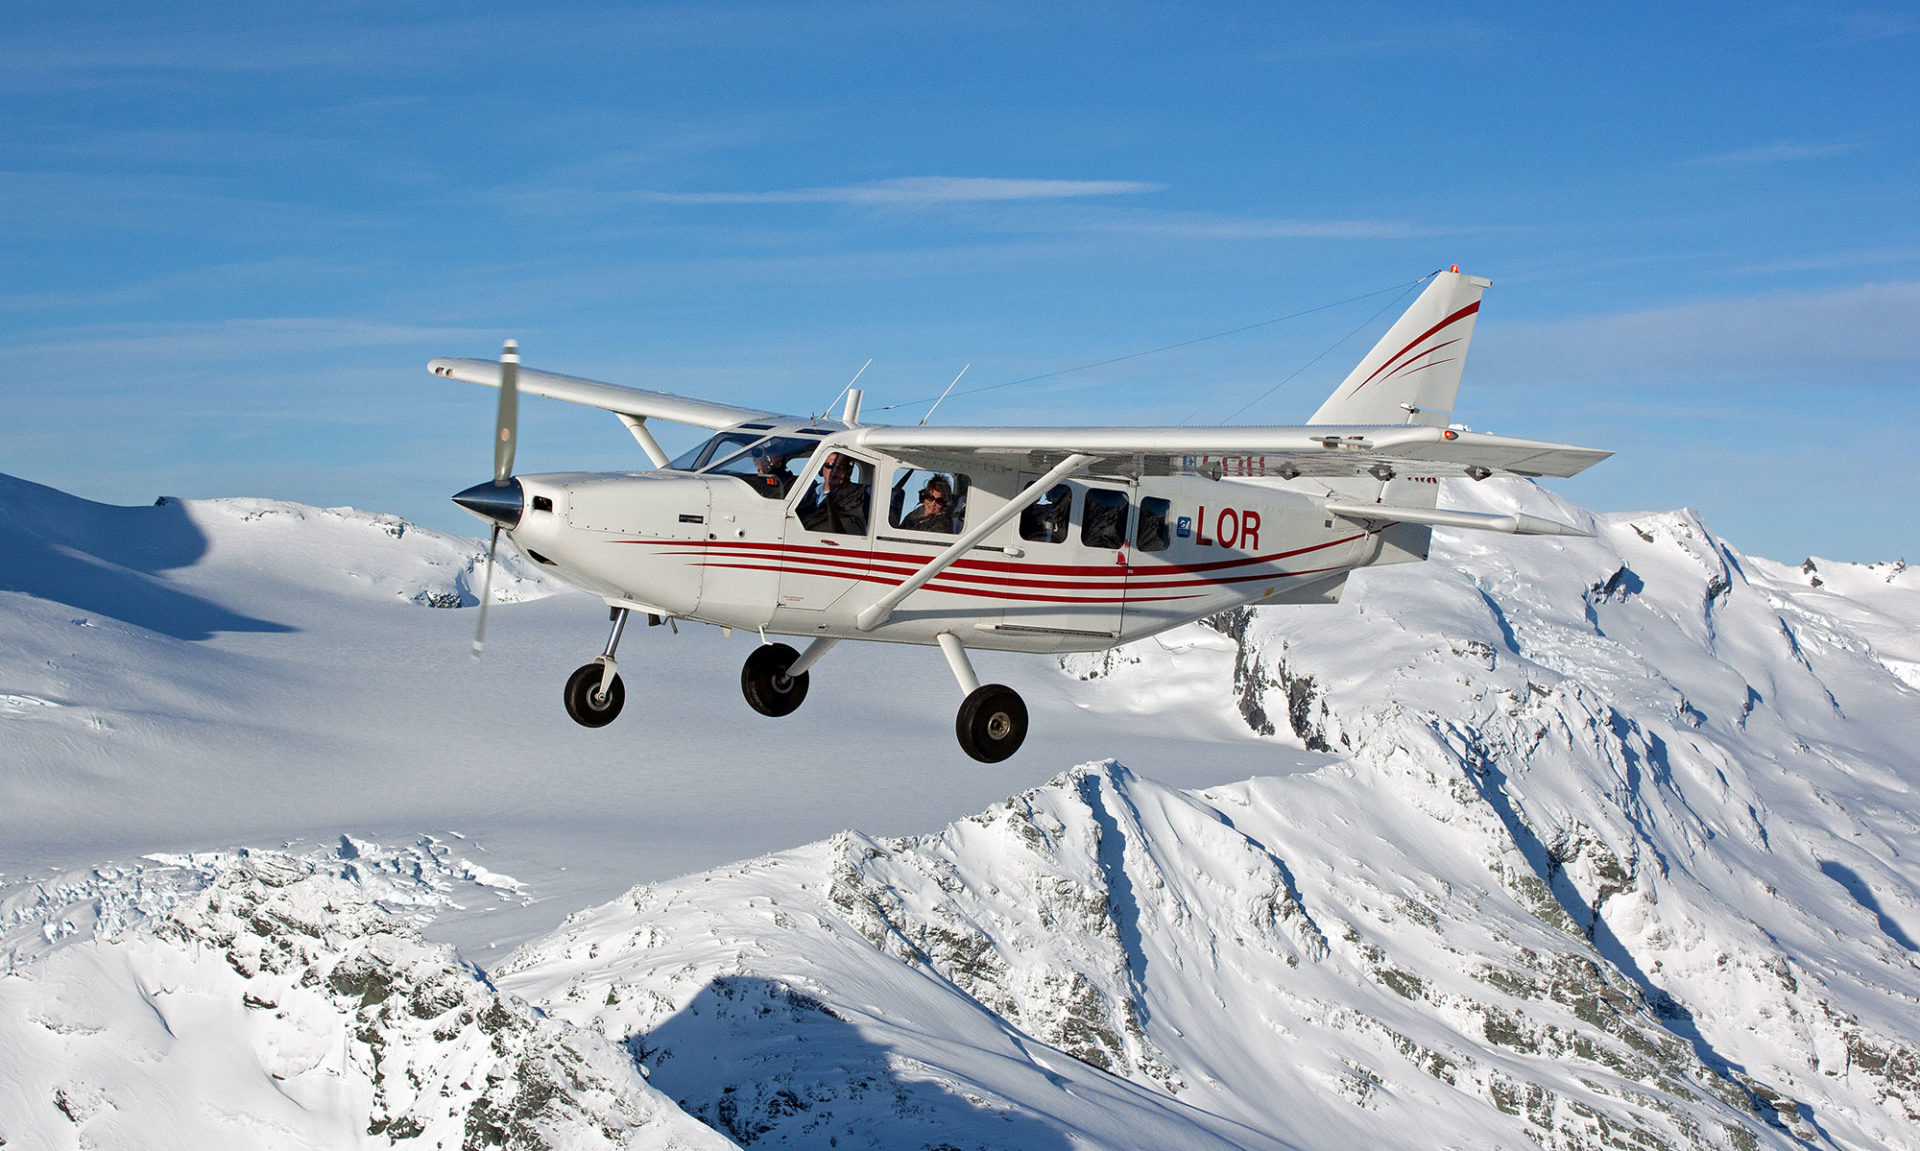 Glenorchy-Air2.jpg